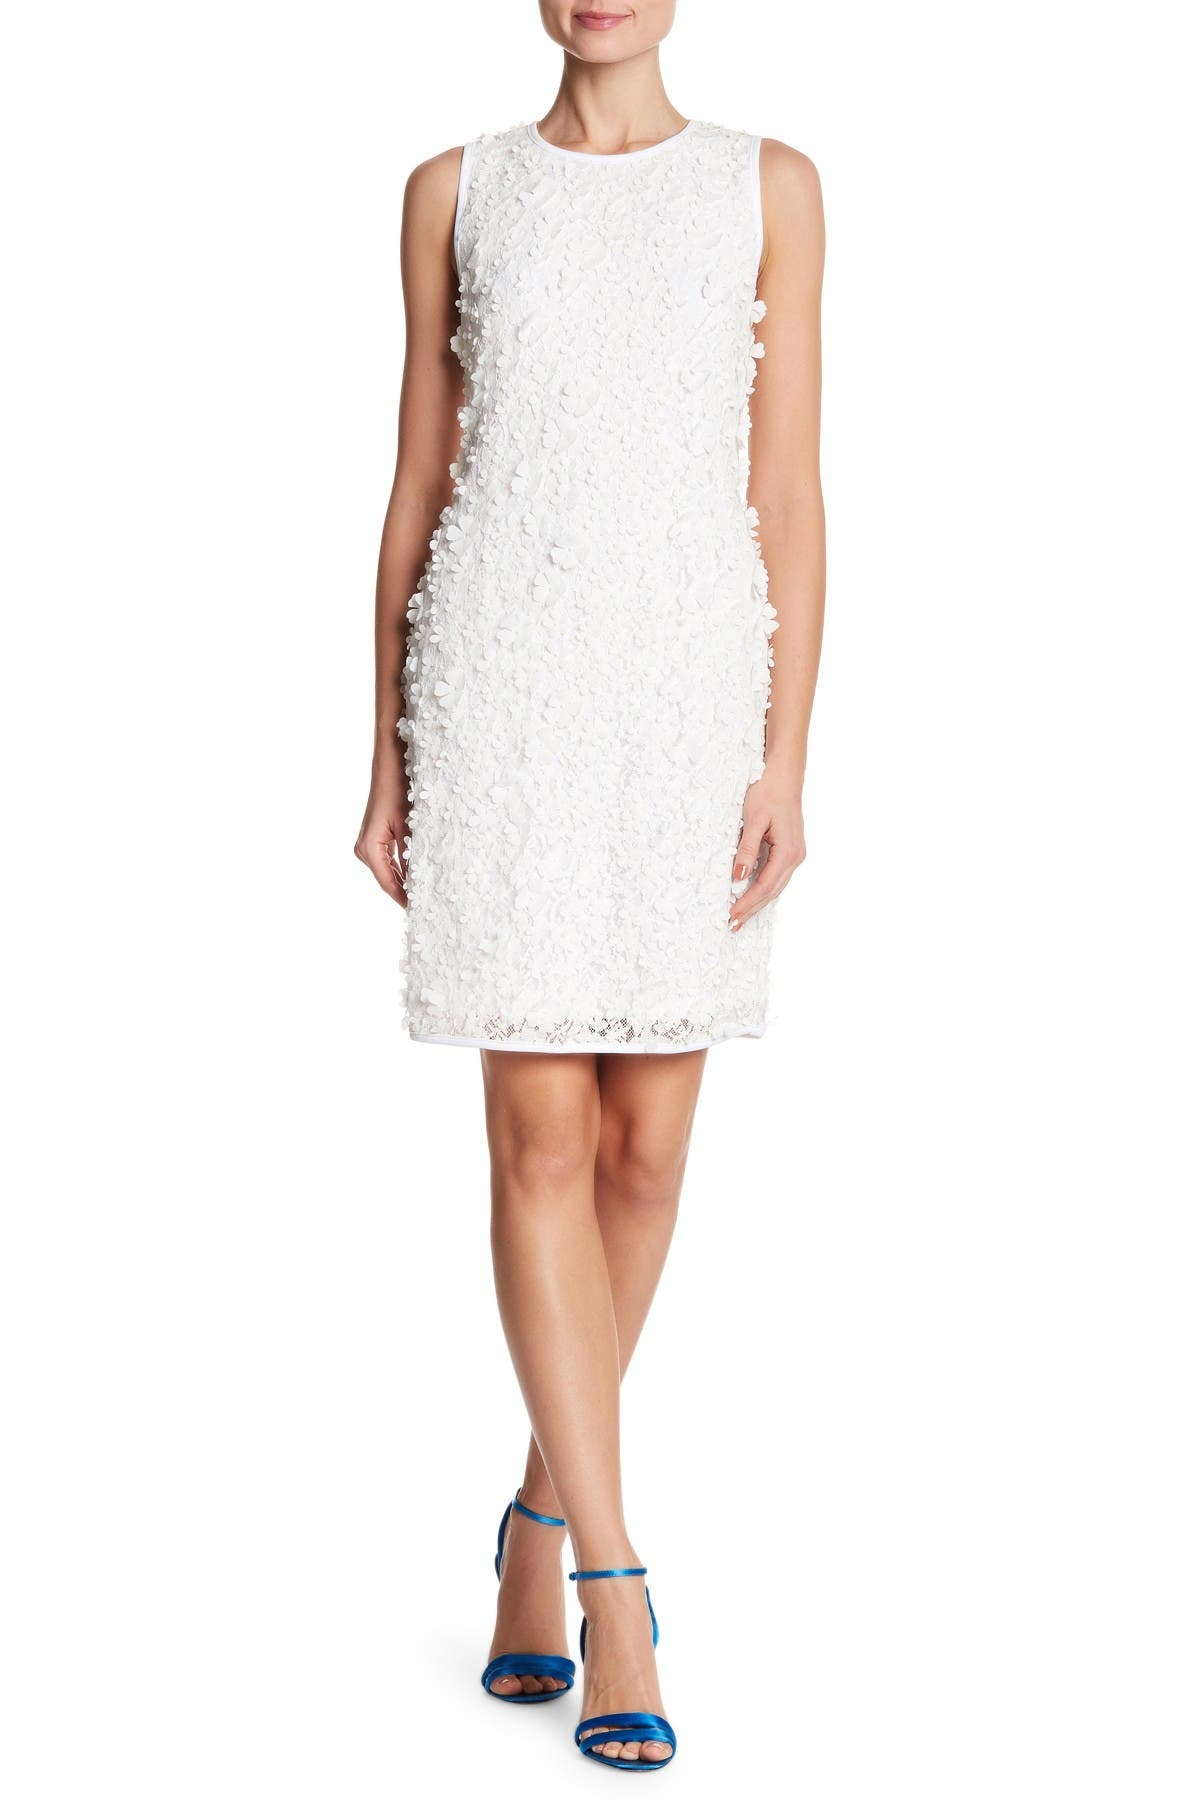 Image of Nina Leonard 3D Flower Lace Sheath Dress